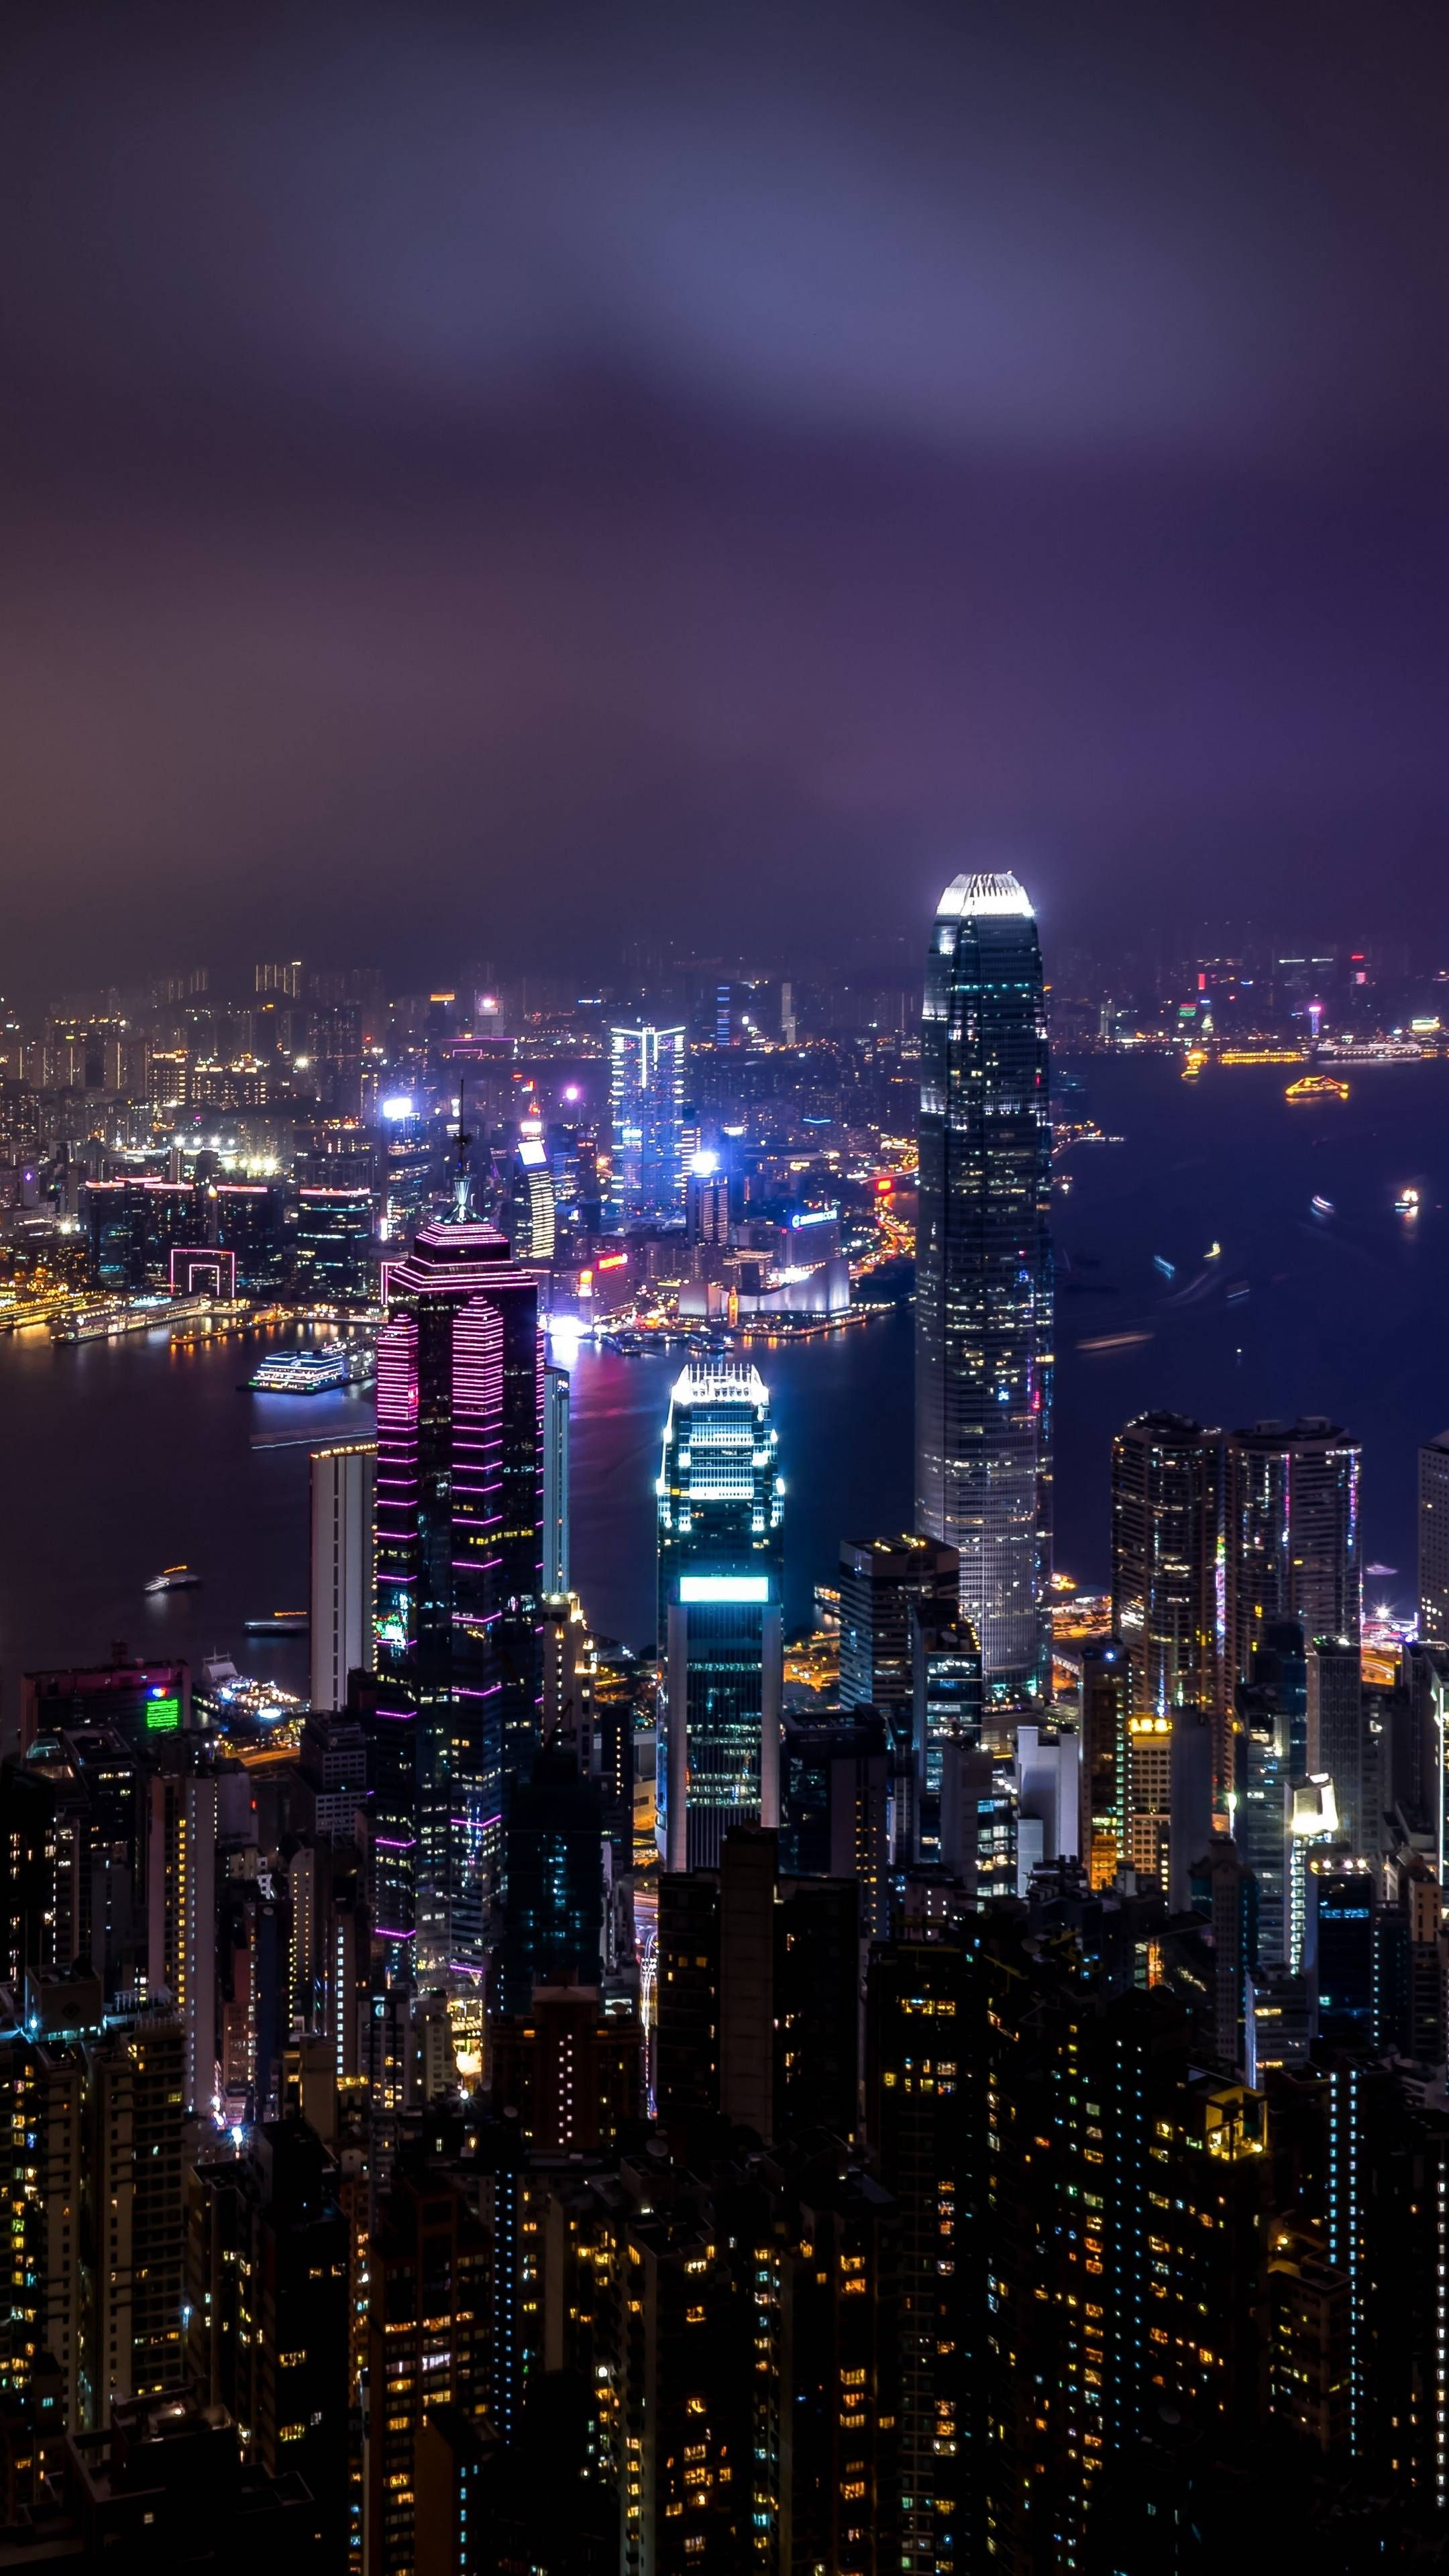 2160x3840 Hong Kong Skyscrapers At Night City Lights Wallpaper City Wallpaper China City